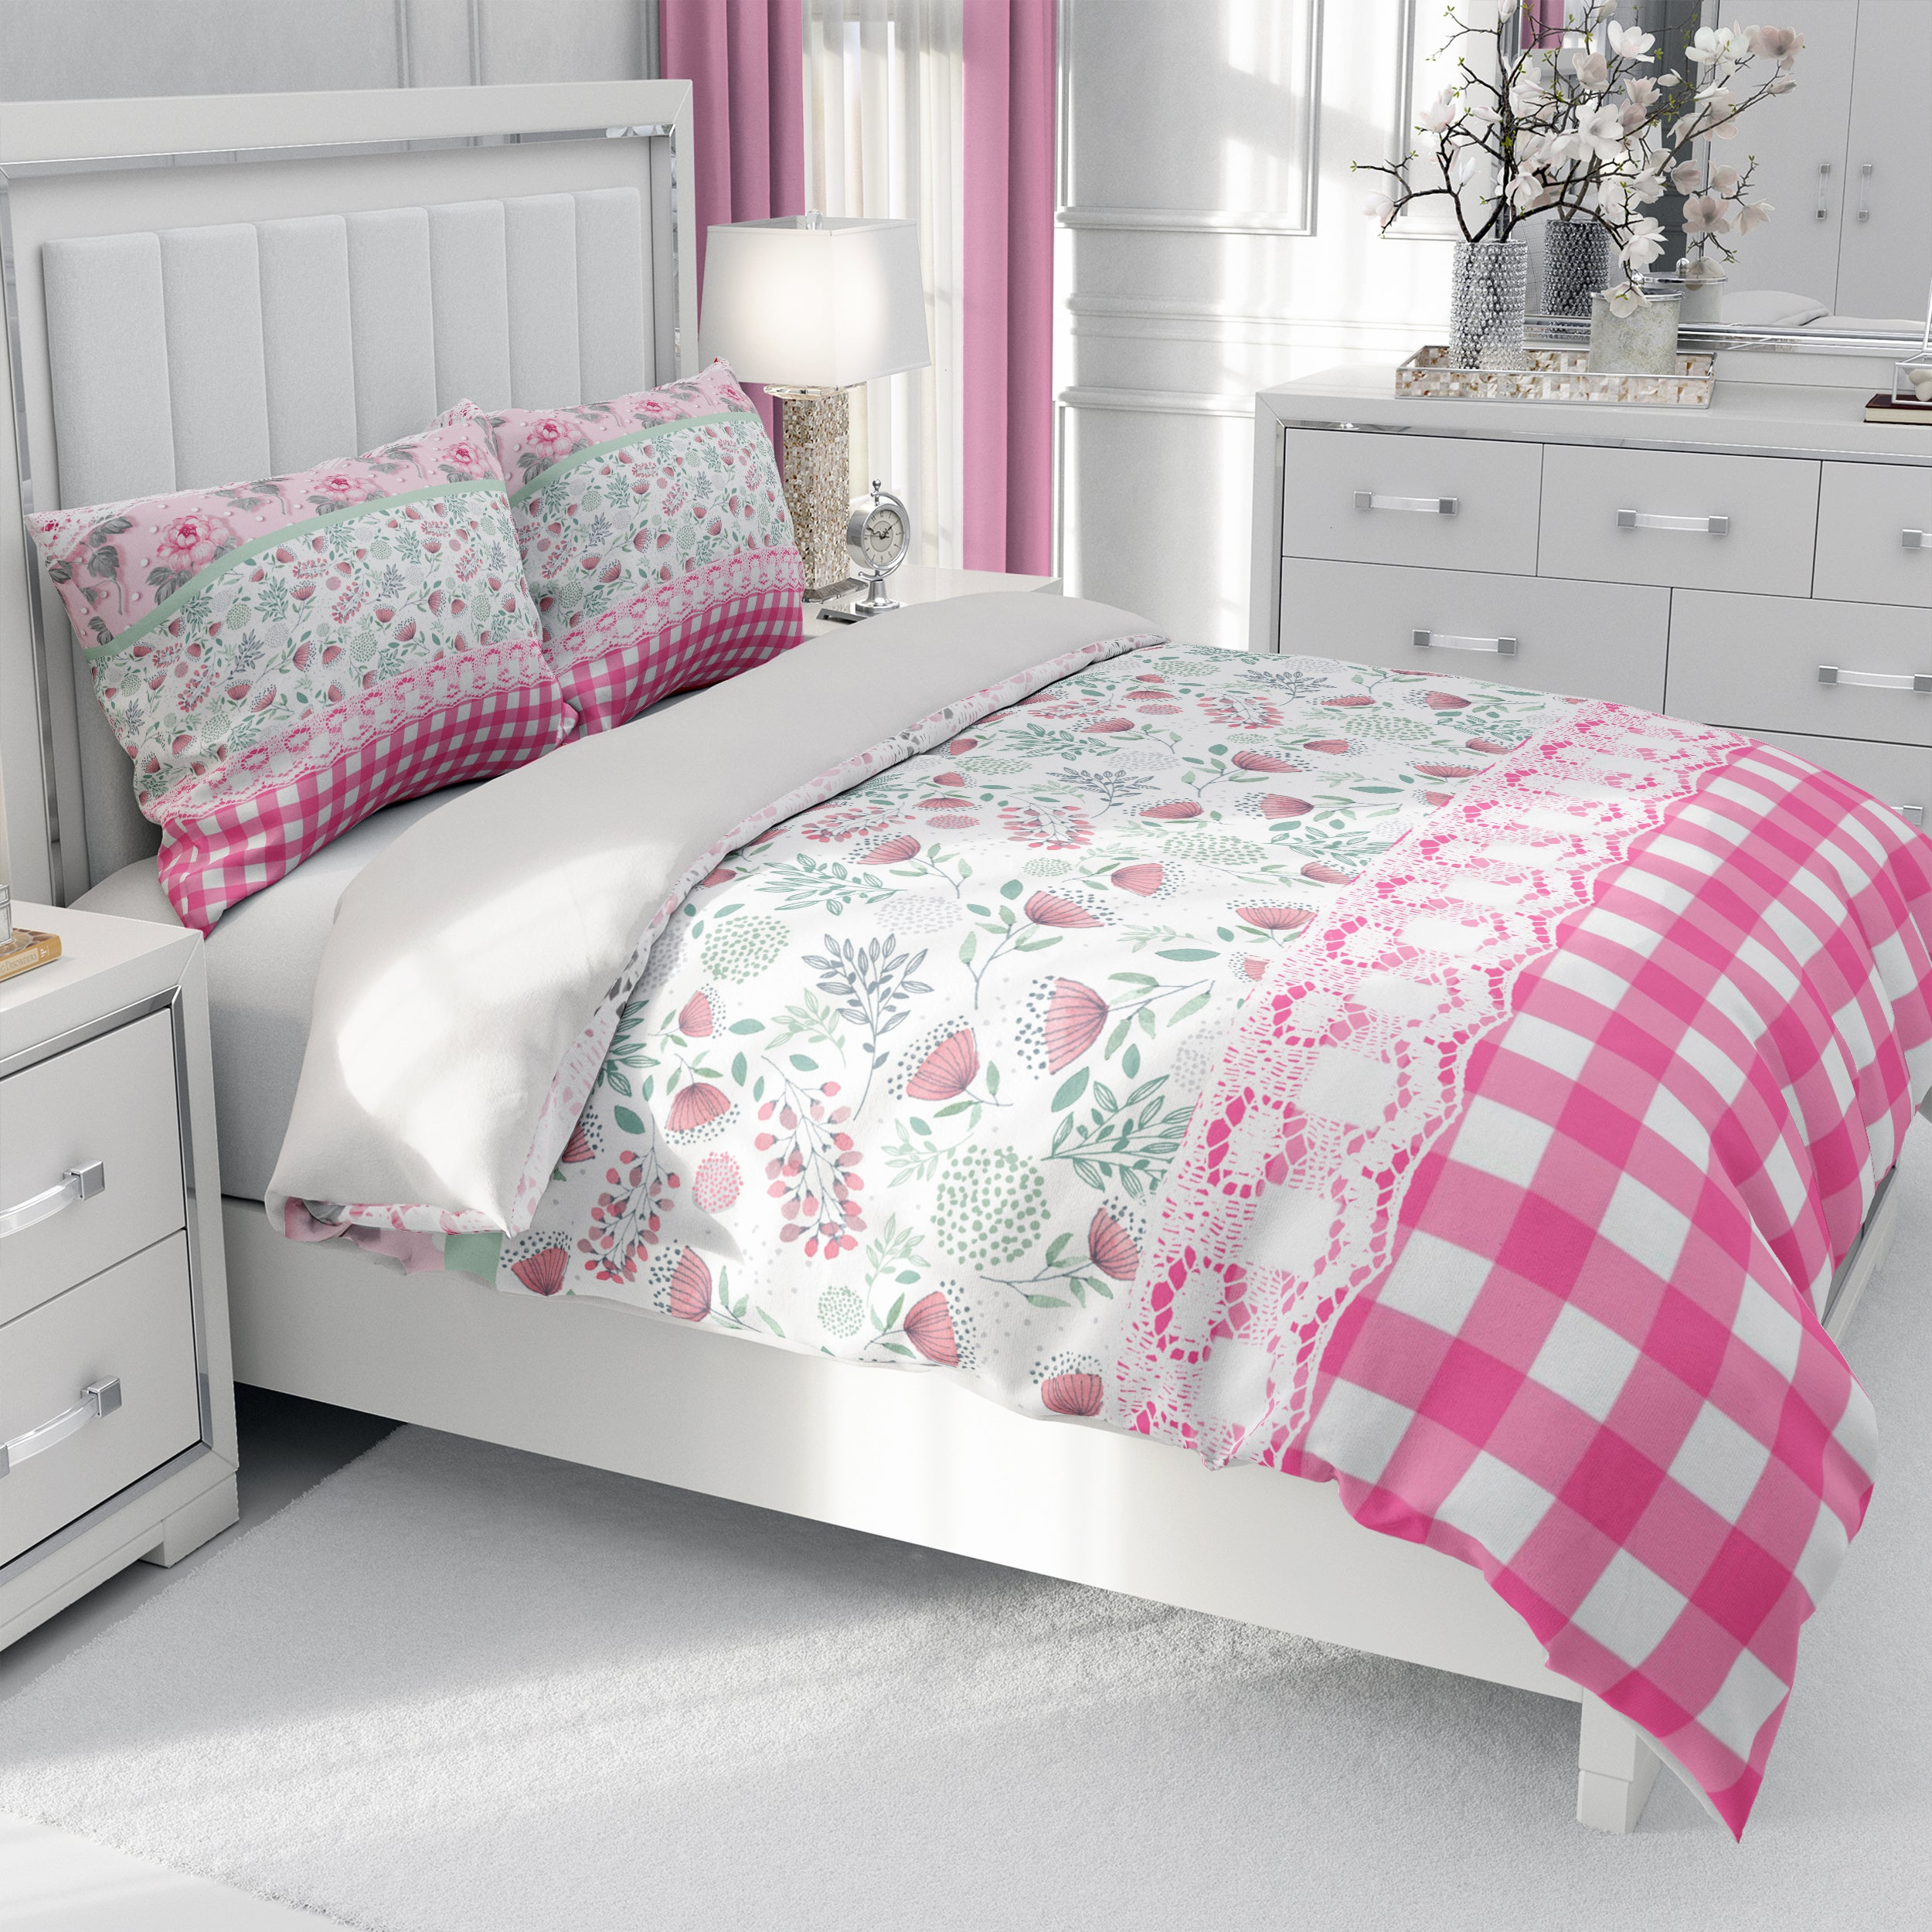 Granny Chic Pink Floral Bedding